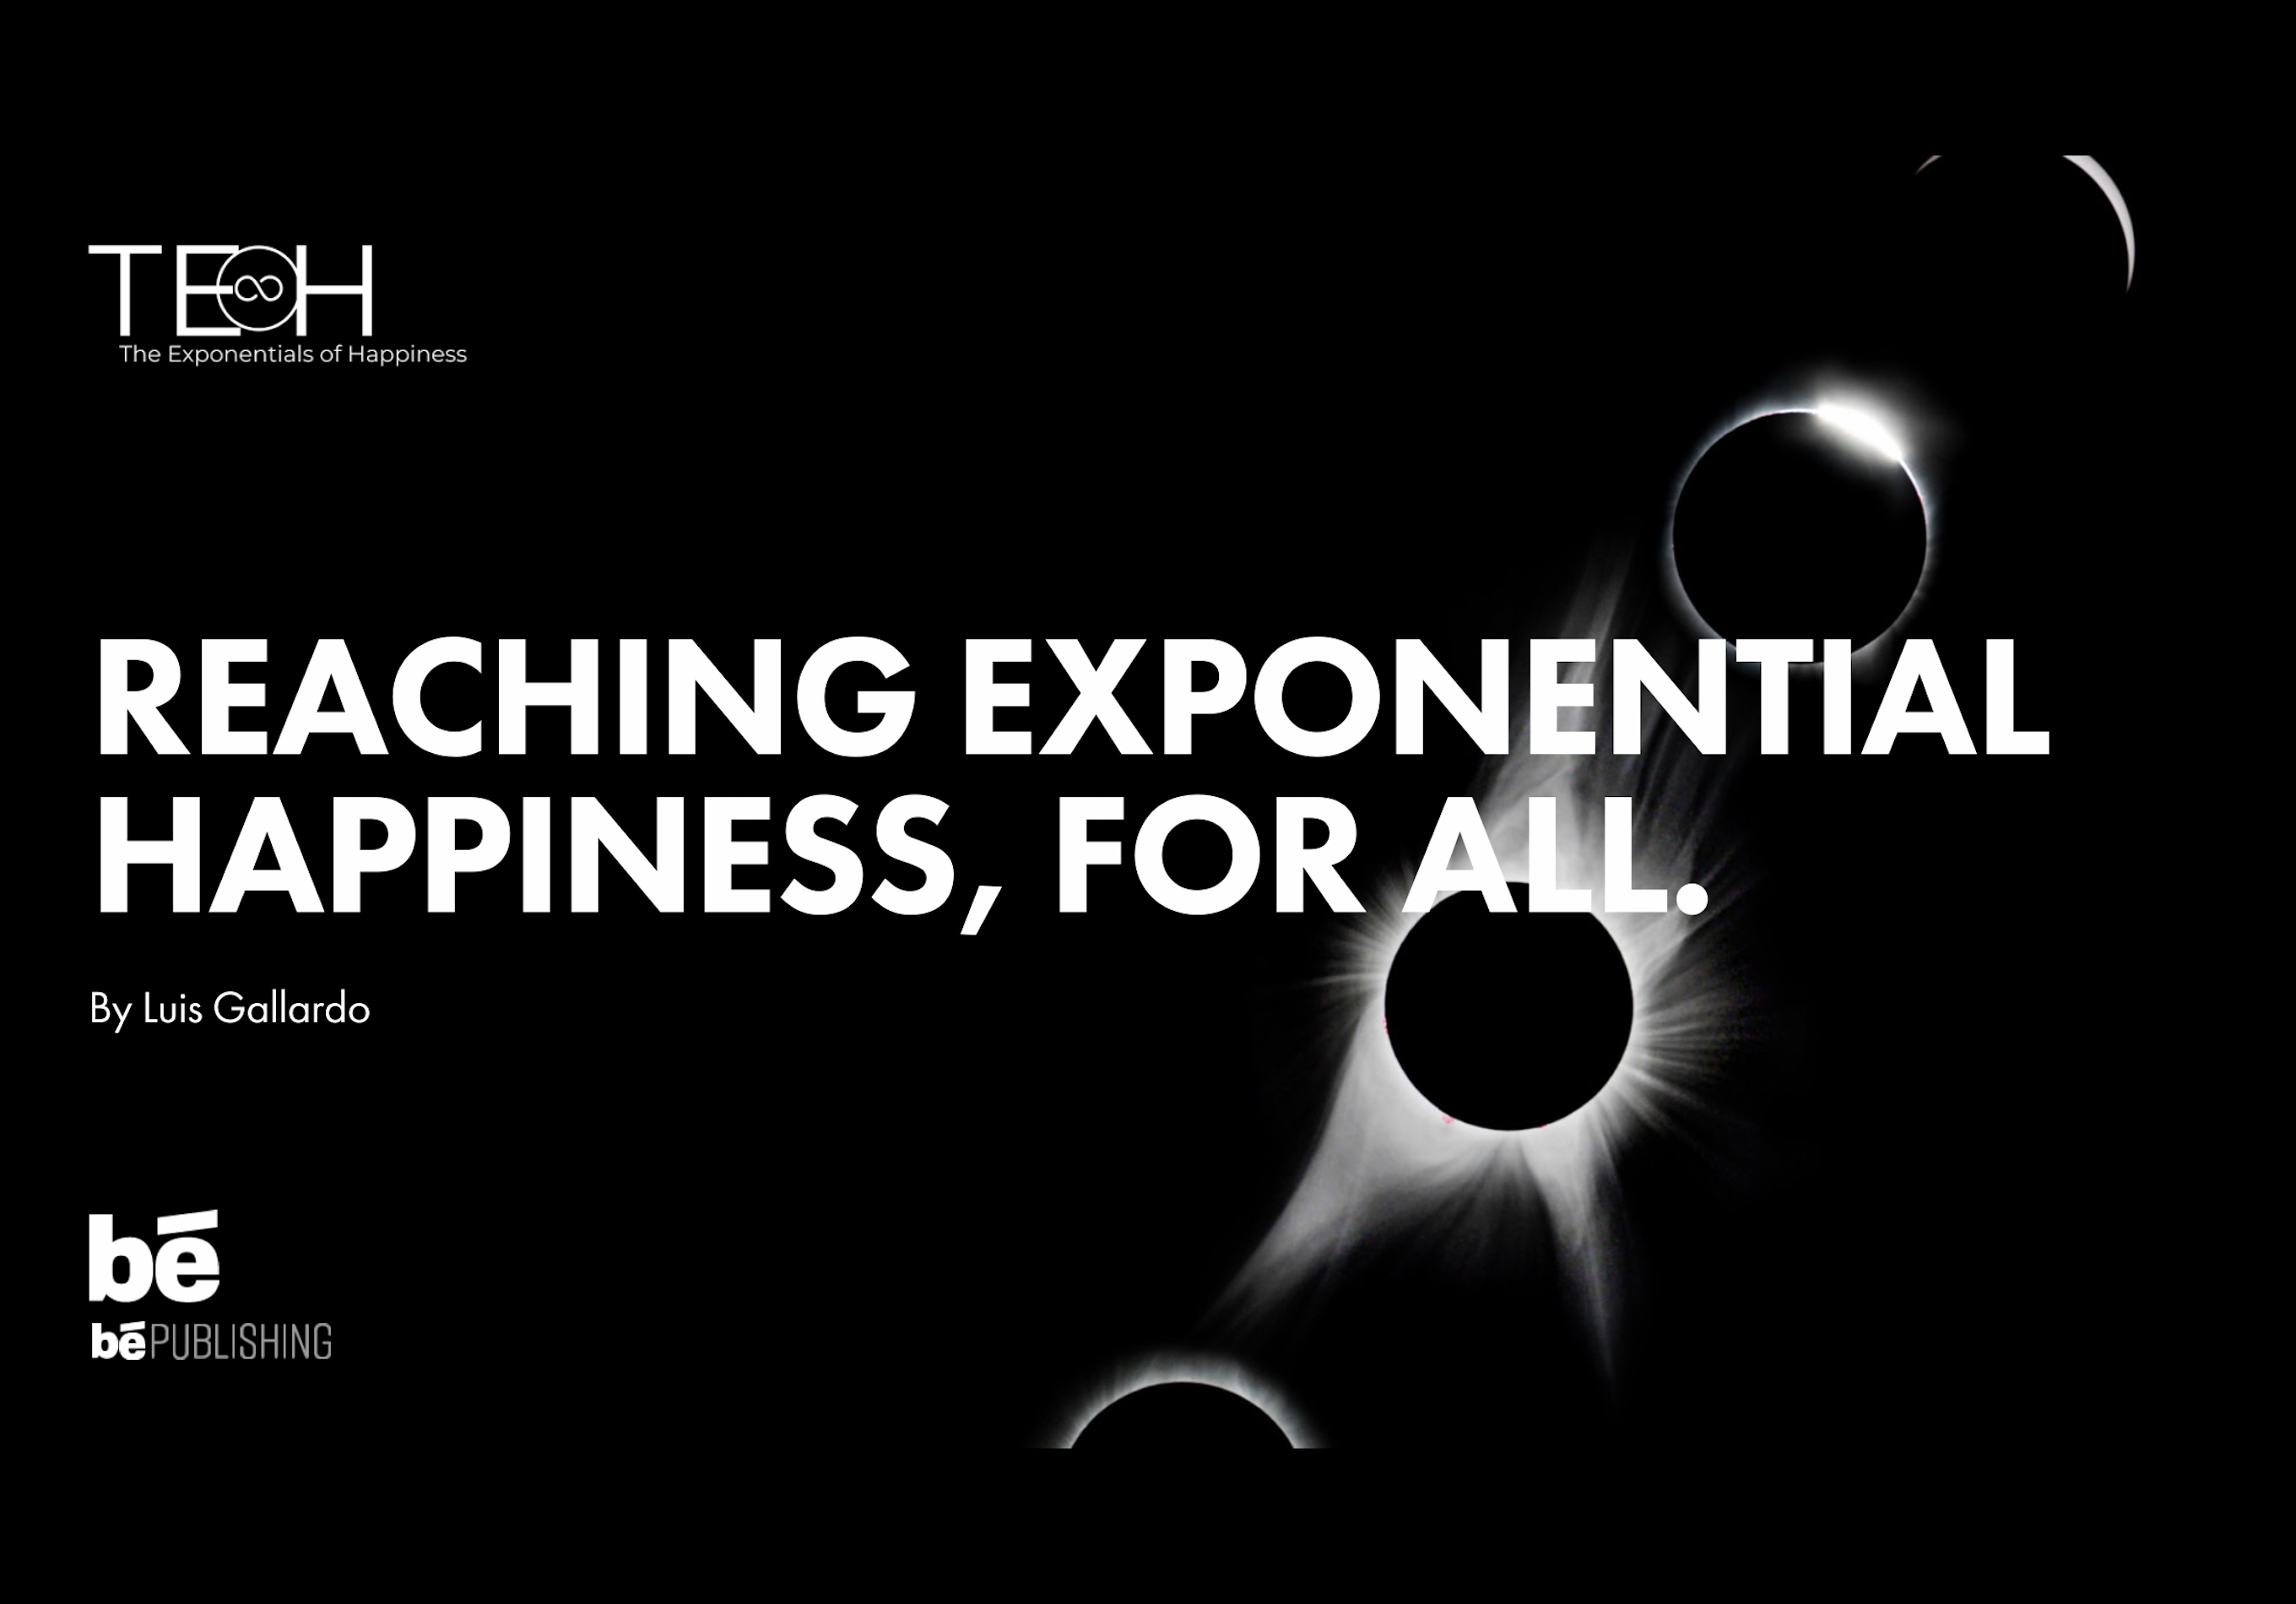 The Exponentials of Happiness by Luis Gallardo